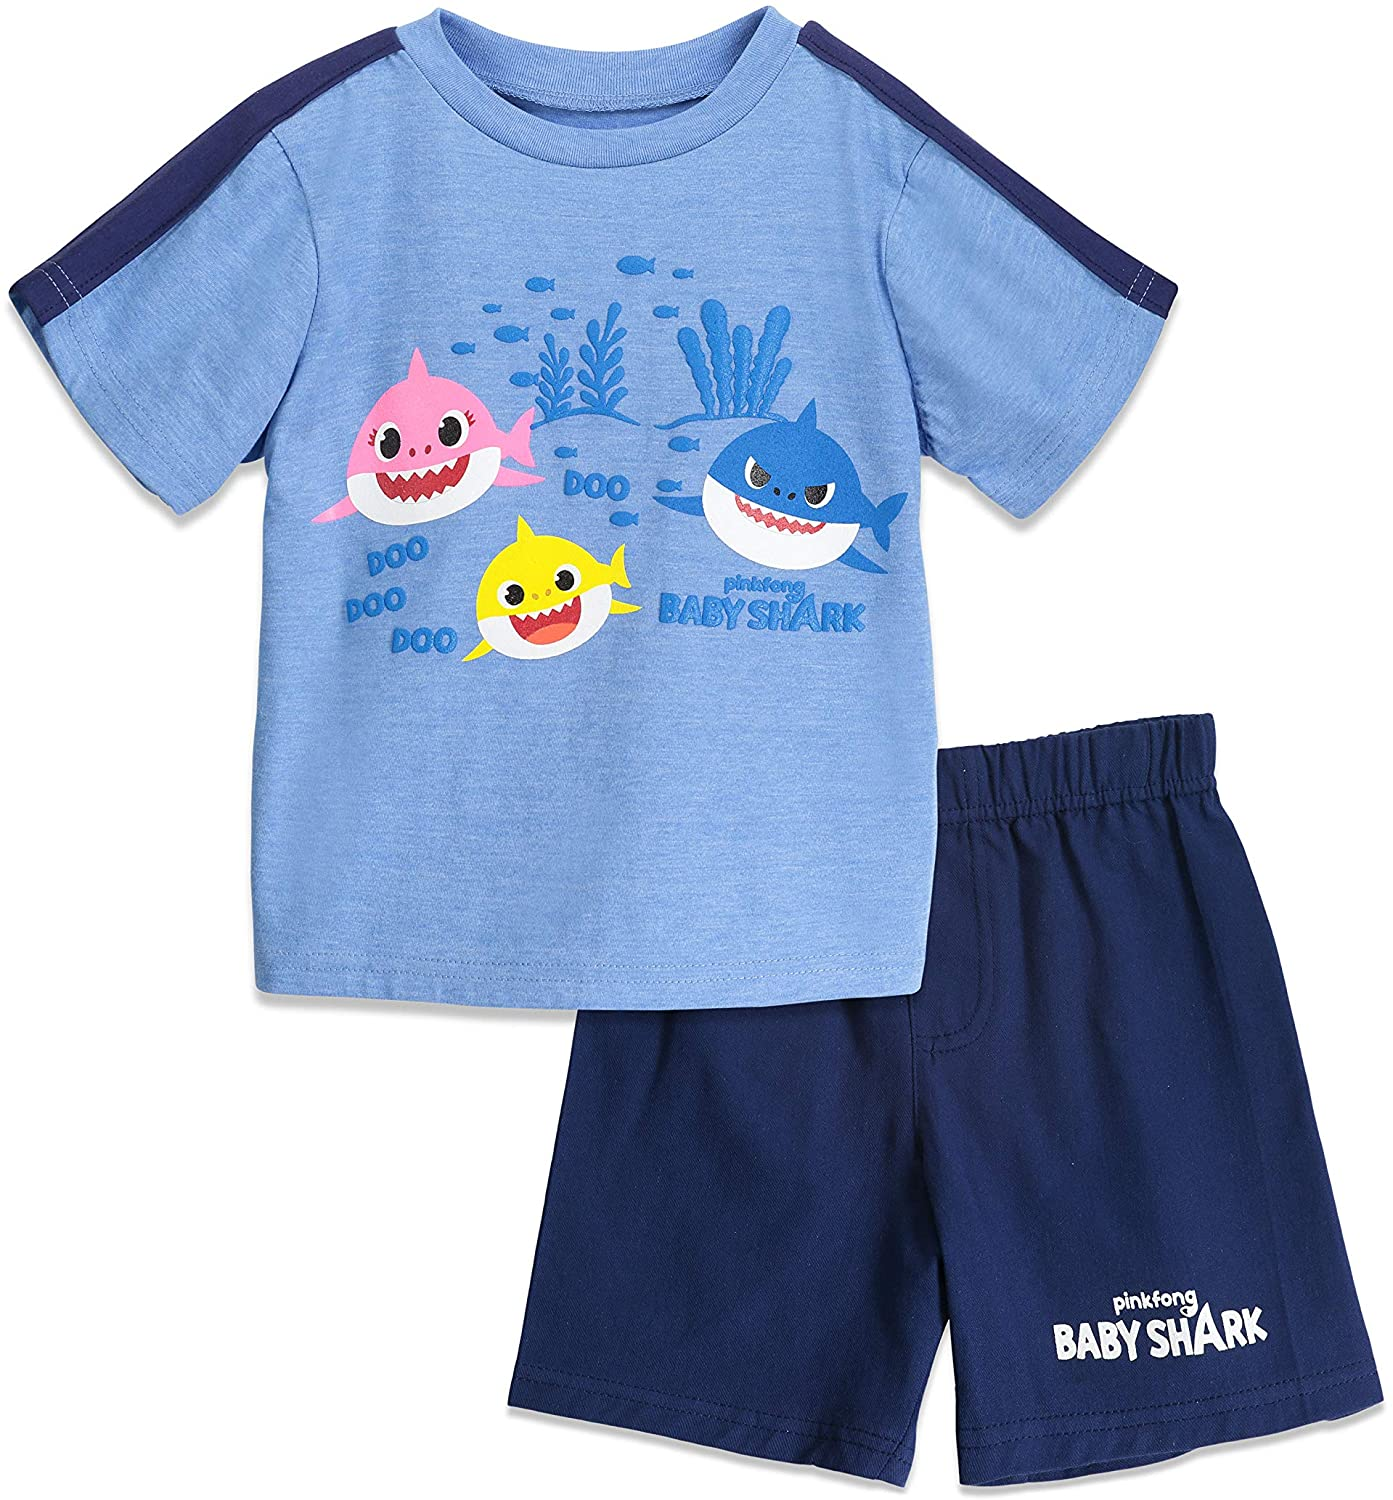 Pinkfong Baby Shark Boys T-Shirt & French Terry Shorts Set